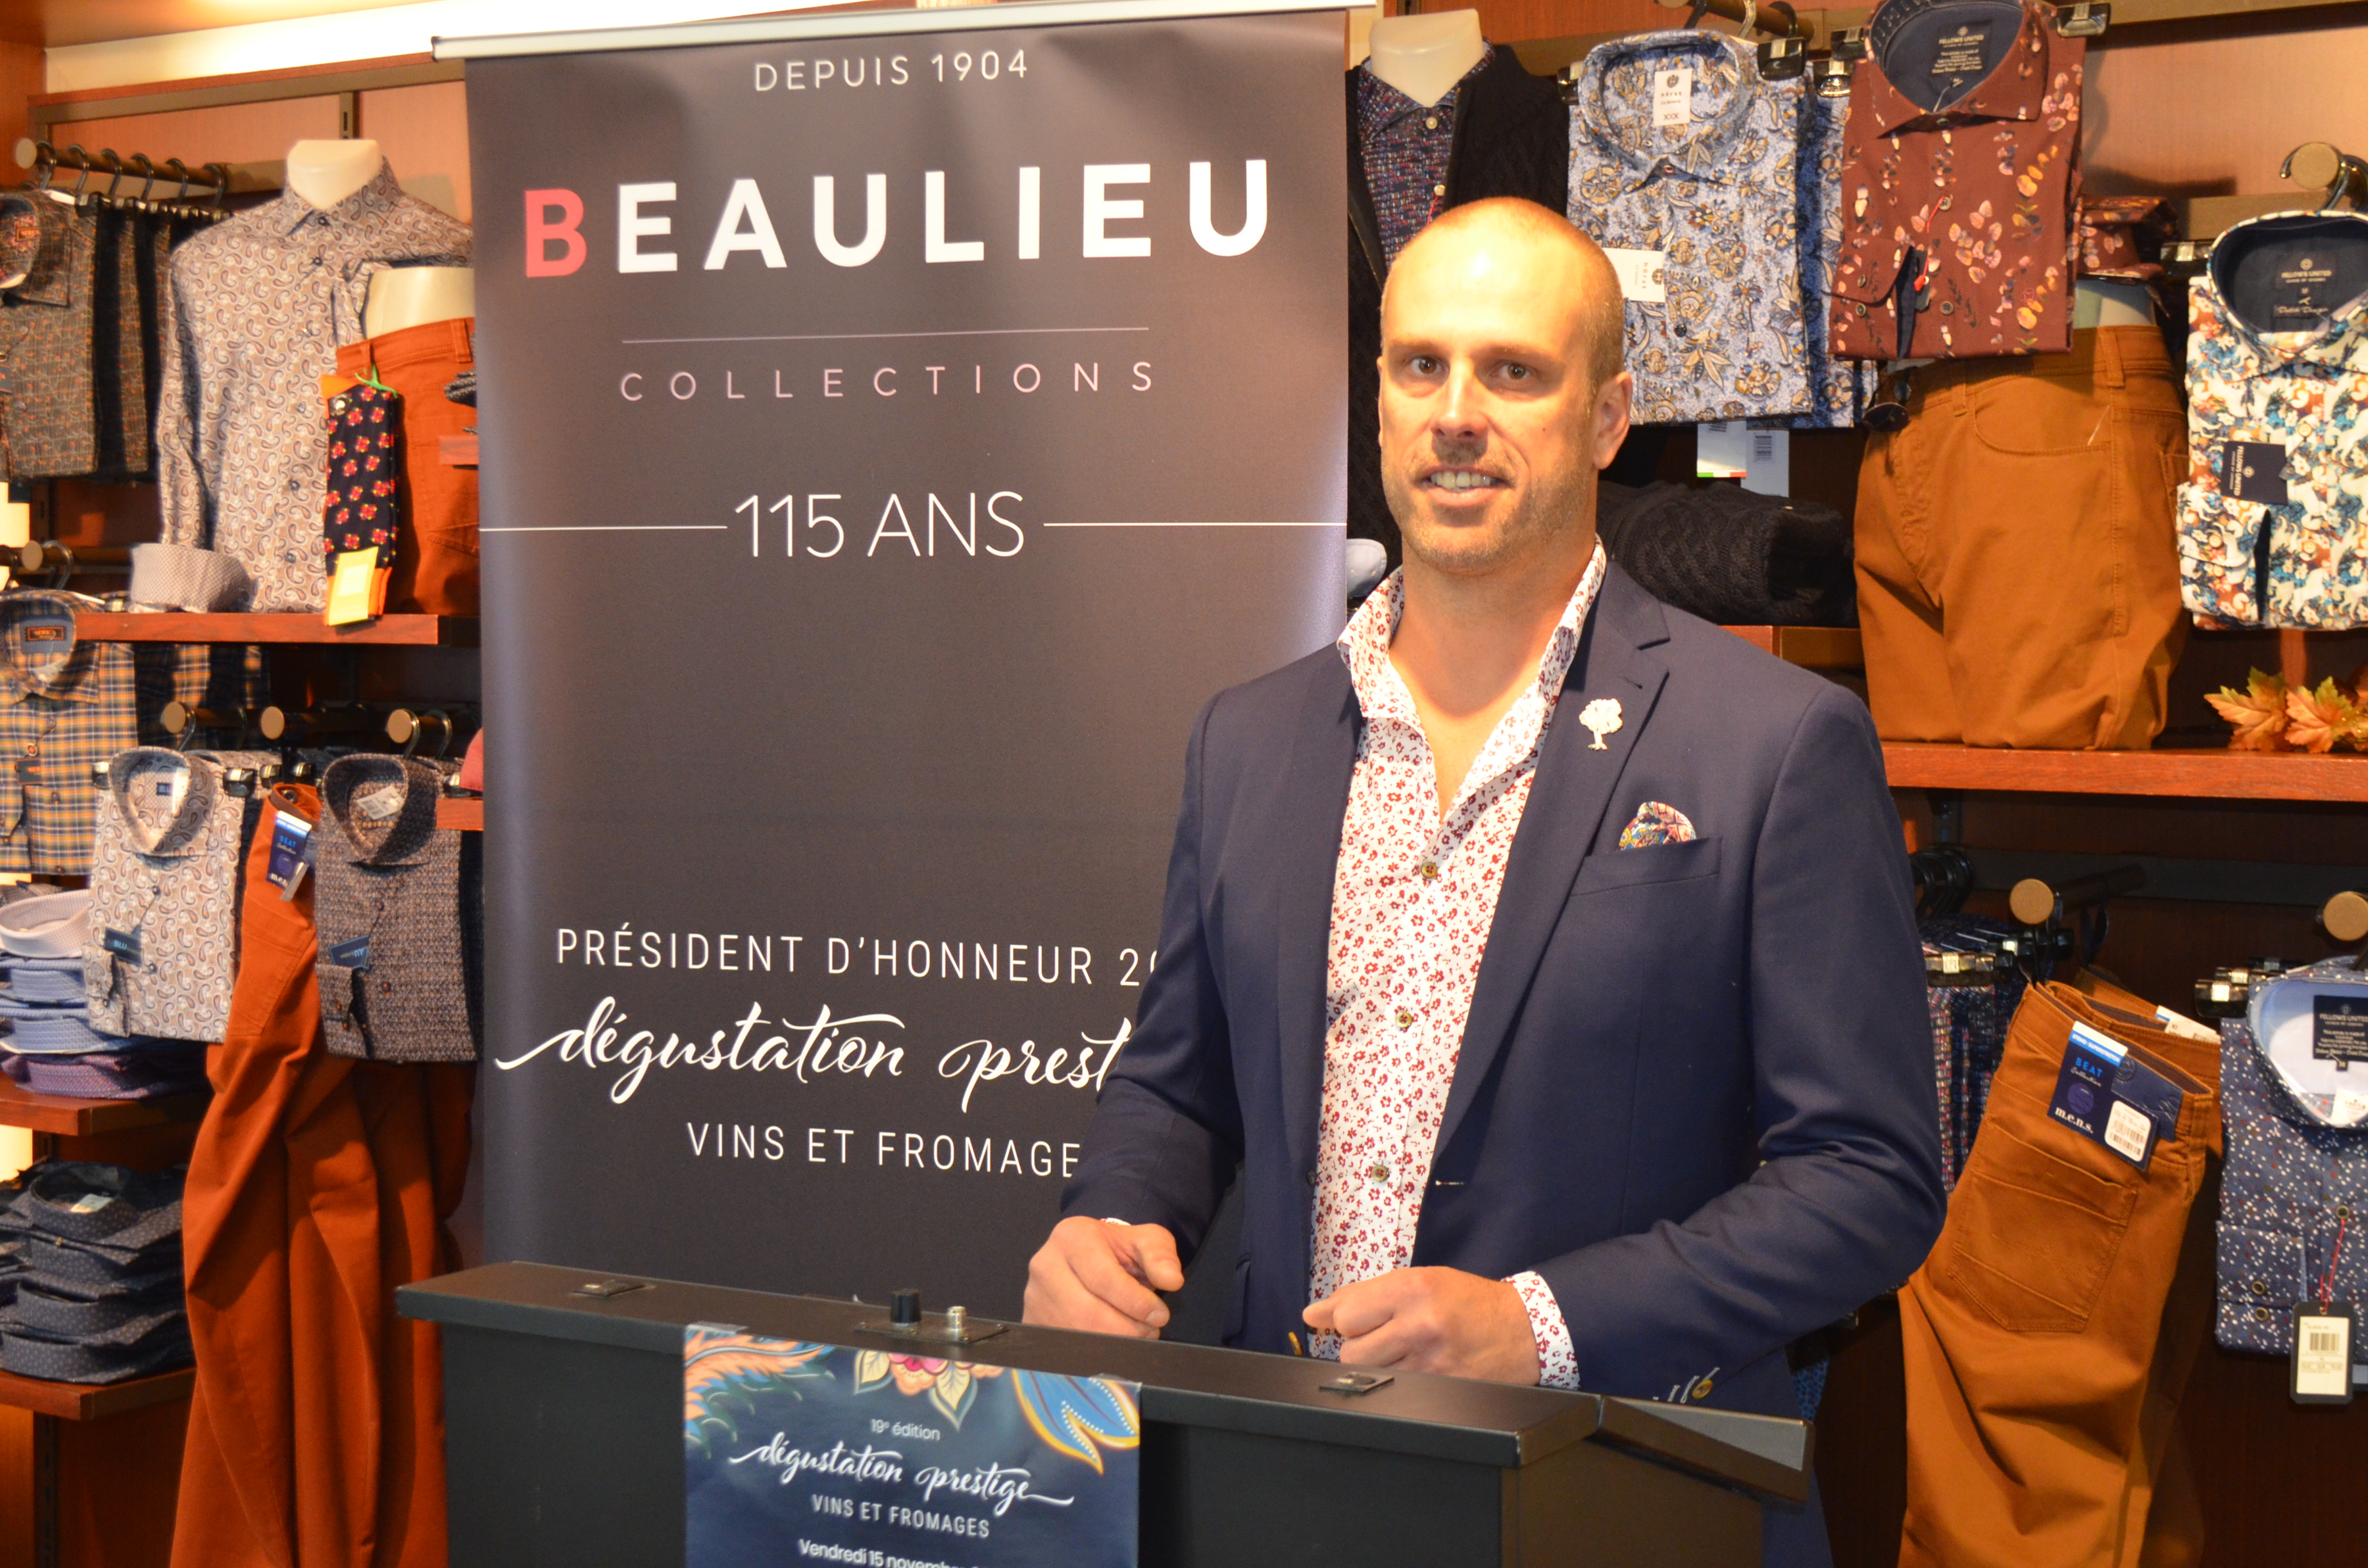 Jean‐Martin Beaulieu de Beaulieu Collections